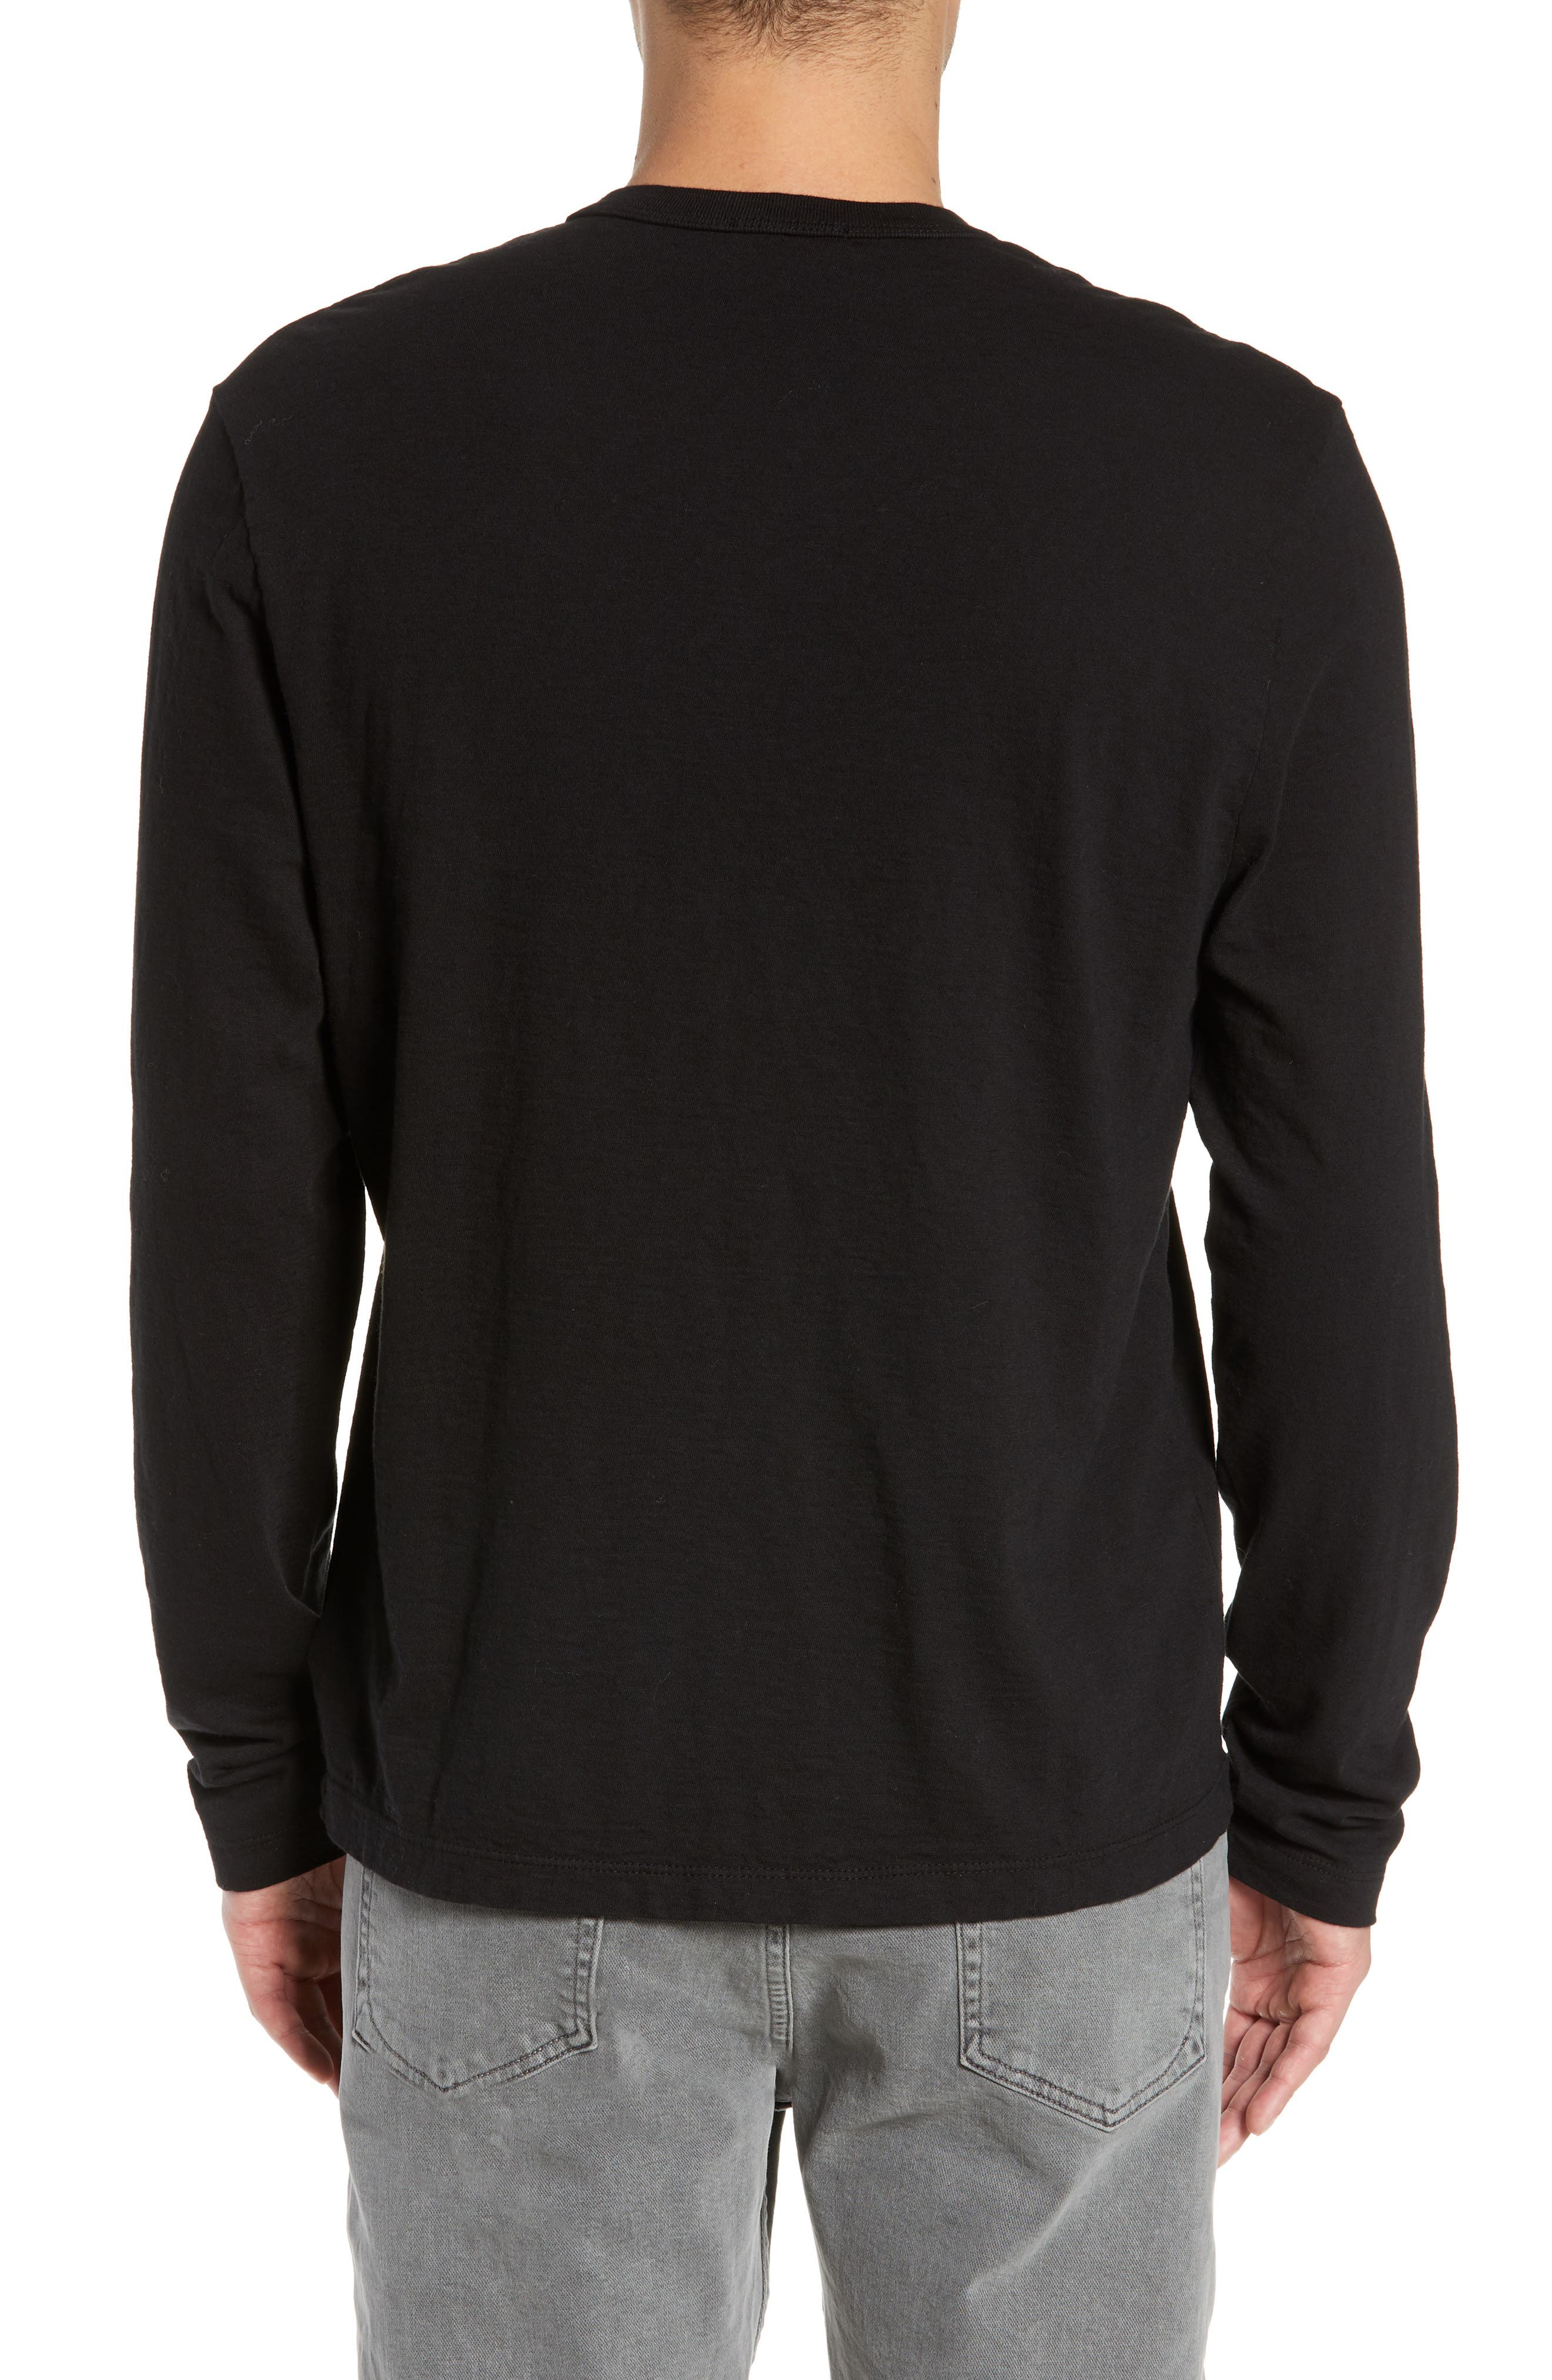 JAMES PERSE, Slim Fit Long Sleeve Henley, Alternate thumbnail 2, color, 001